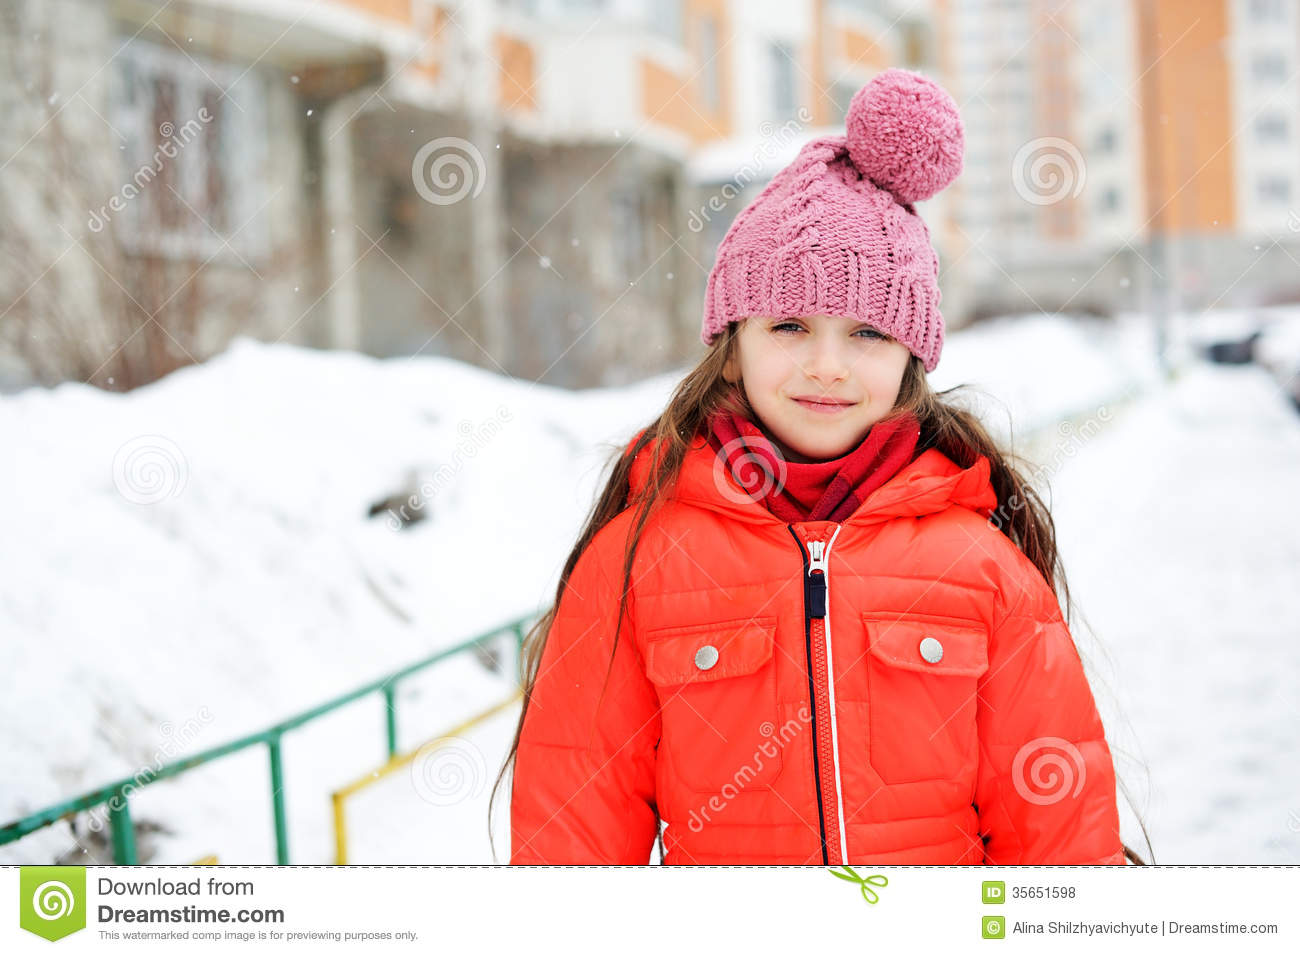 bfebcccaf Portrait Of Child Girl In Winter Clothes Stock Photo - Image of ...